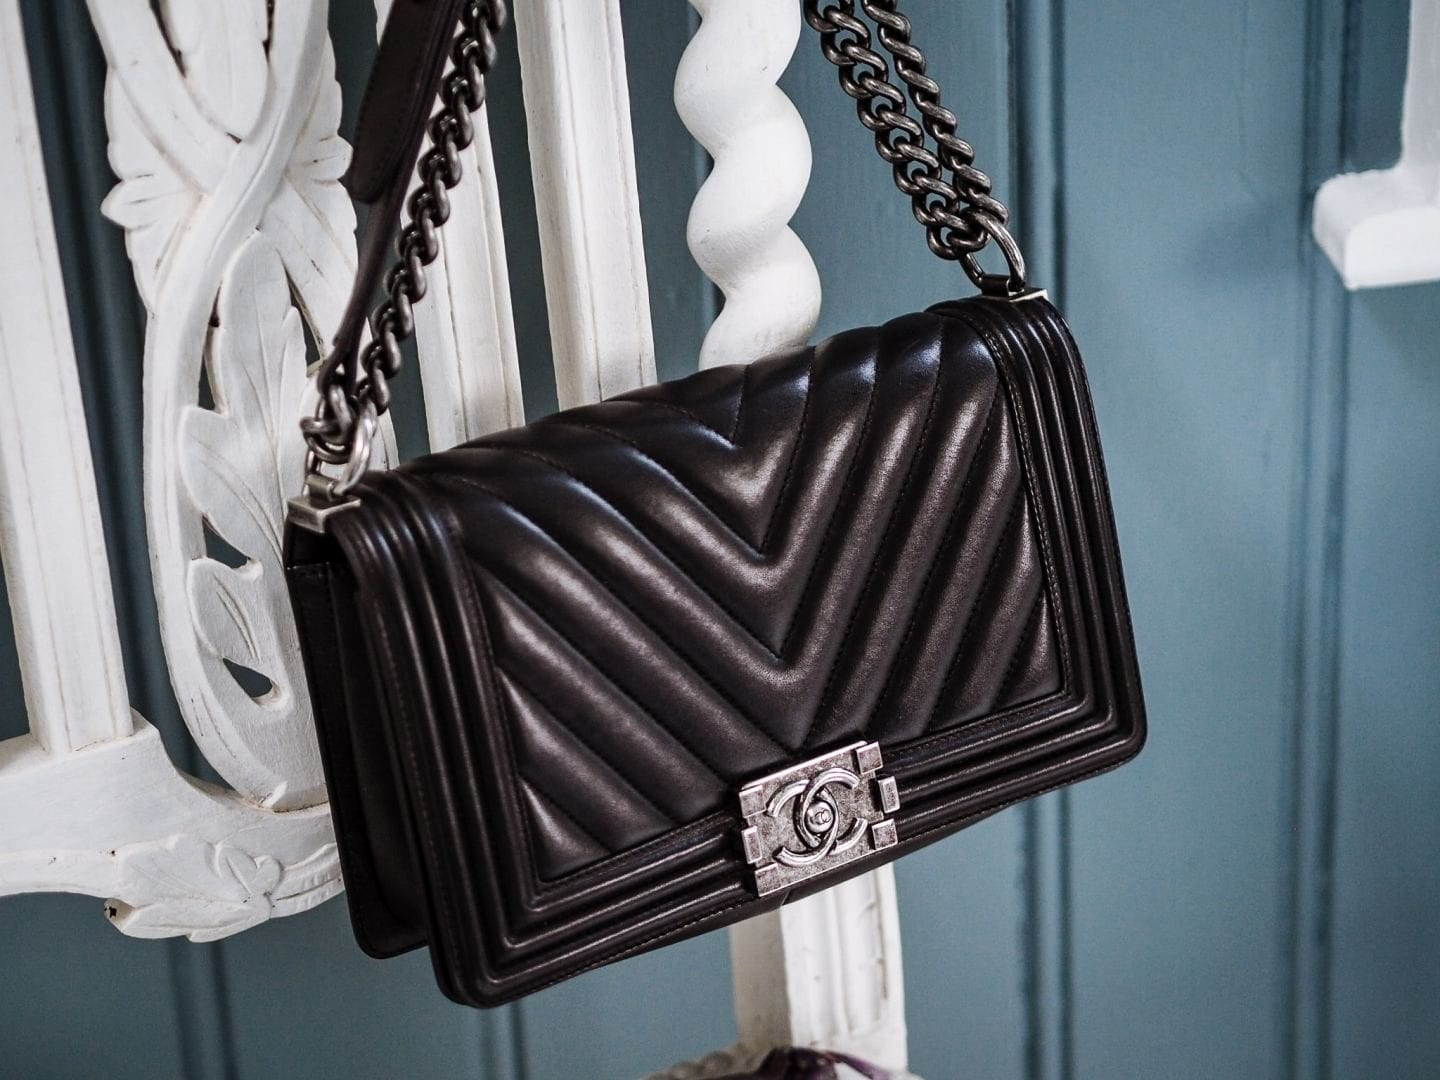 Chanel Bag: Buy Now Pay Later? Can You Stagger The Payments?